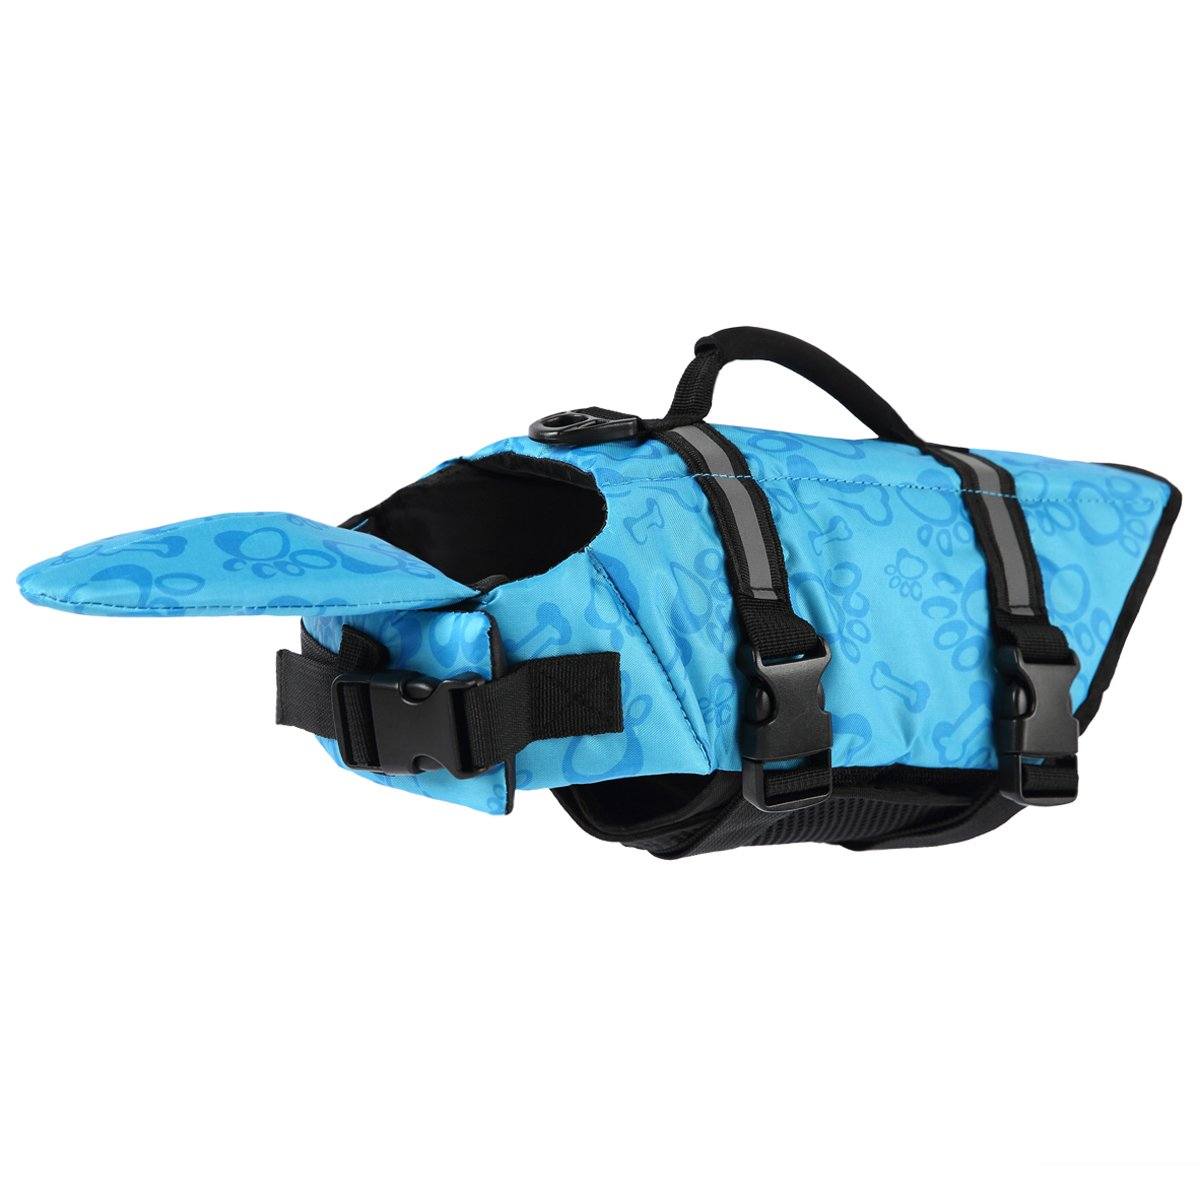 PETCEE Dog Life Jacket,Life Jacket for Dogs,Dog Life Jacket Large and Dog Life Jacket XS Quick Release Easy-Fit Adjustable Life Jackets for Dogs(L,M,S,XS)